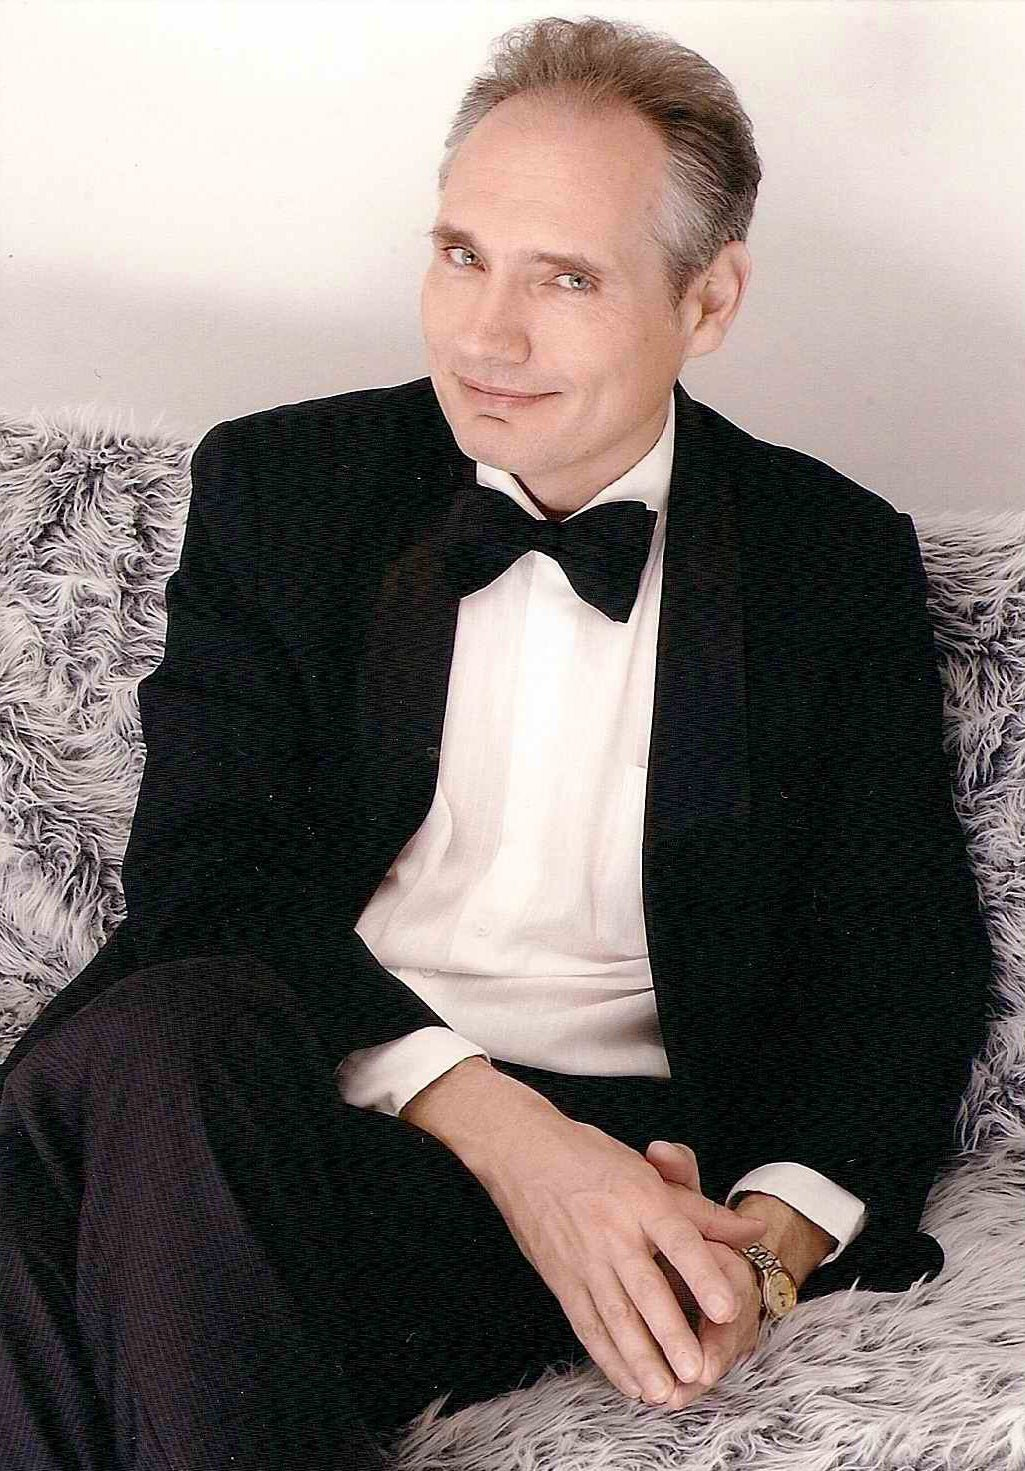 Rolf-Peter Wille to perform tonight